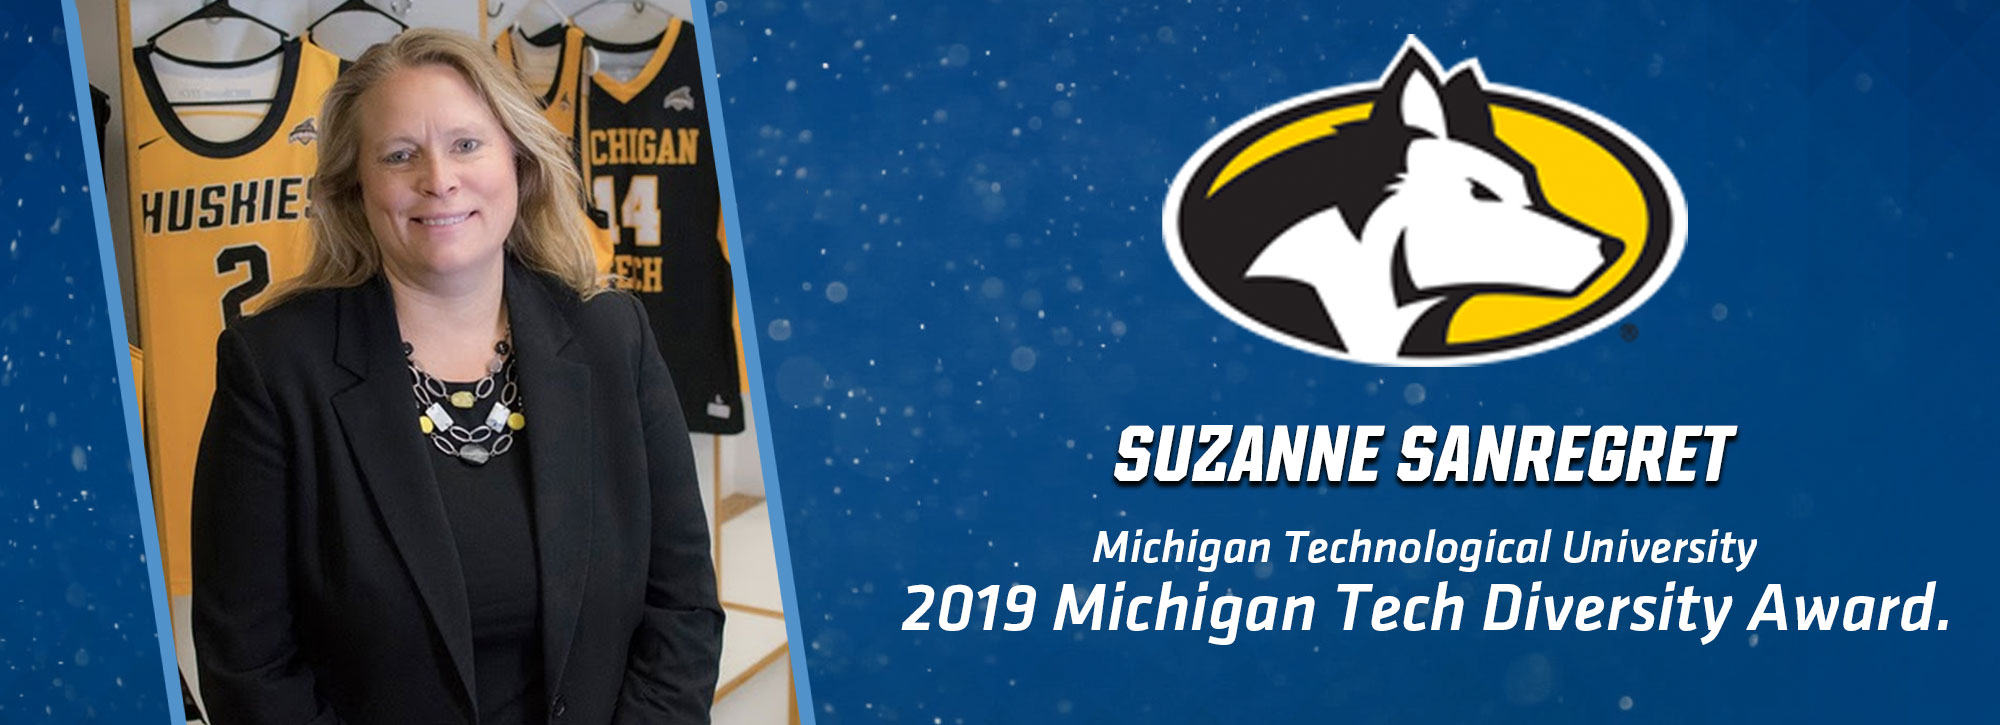 Michigan Tech Recognizes Suzanne Sanregret With 2019 Diversity Award